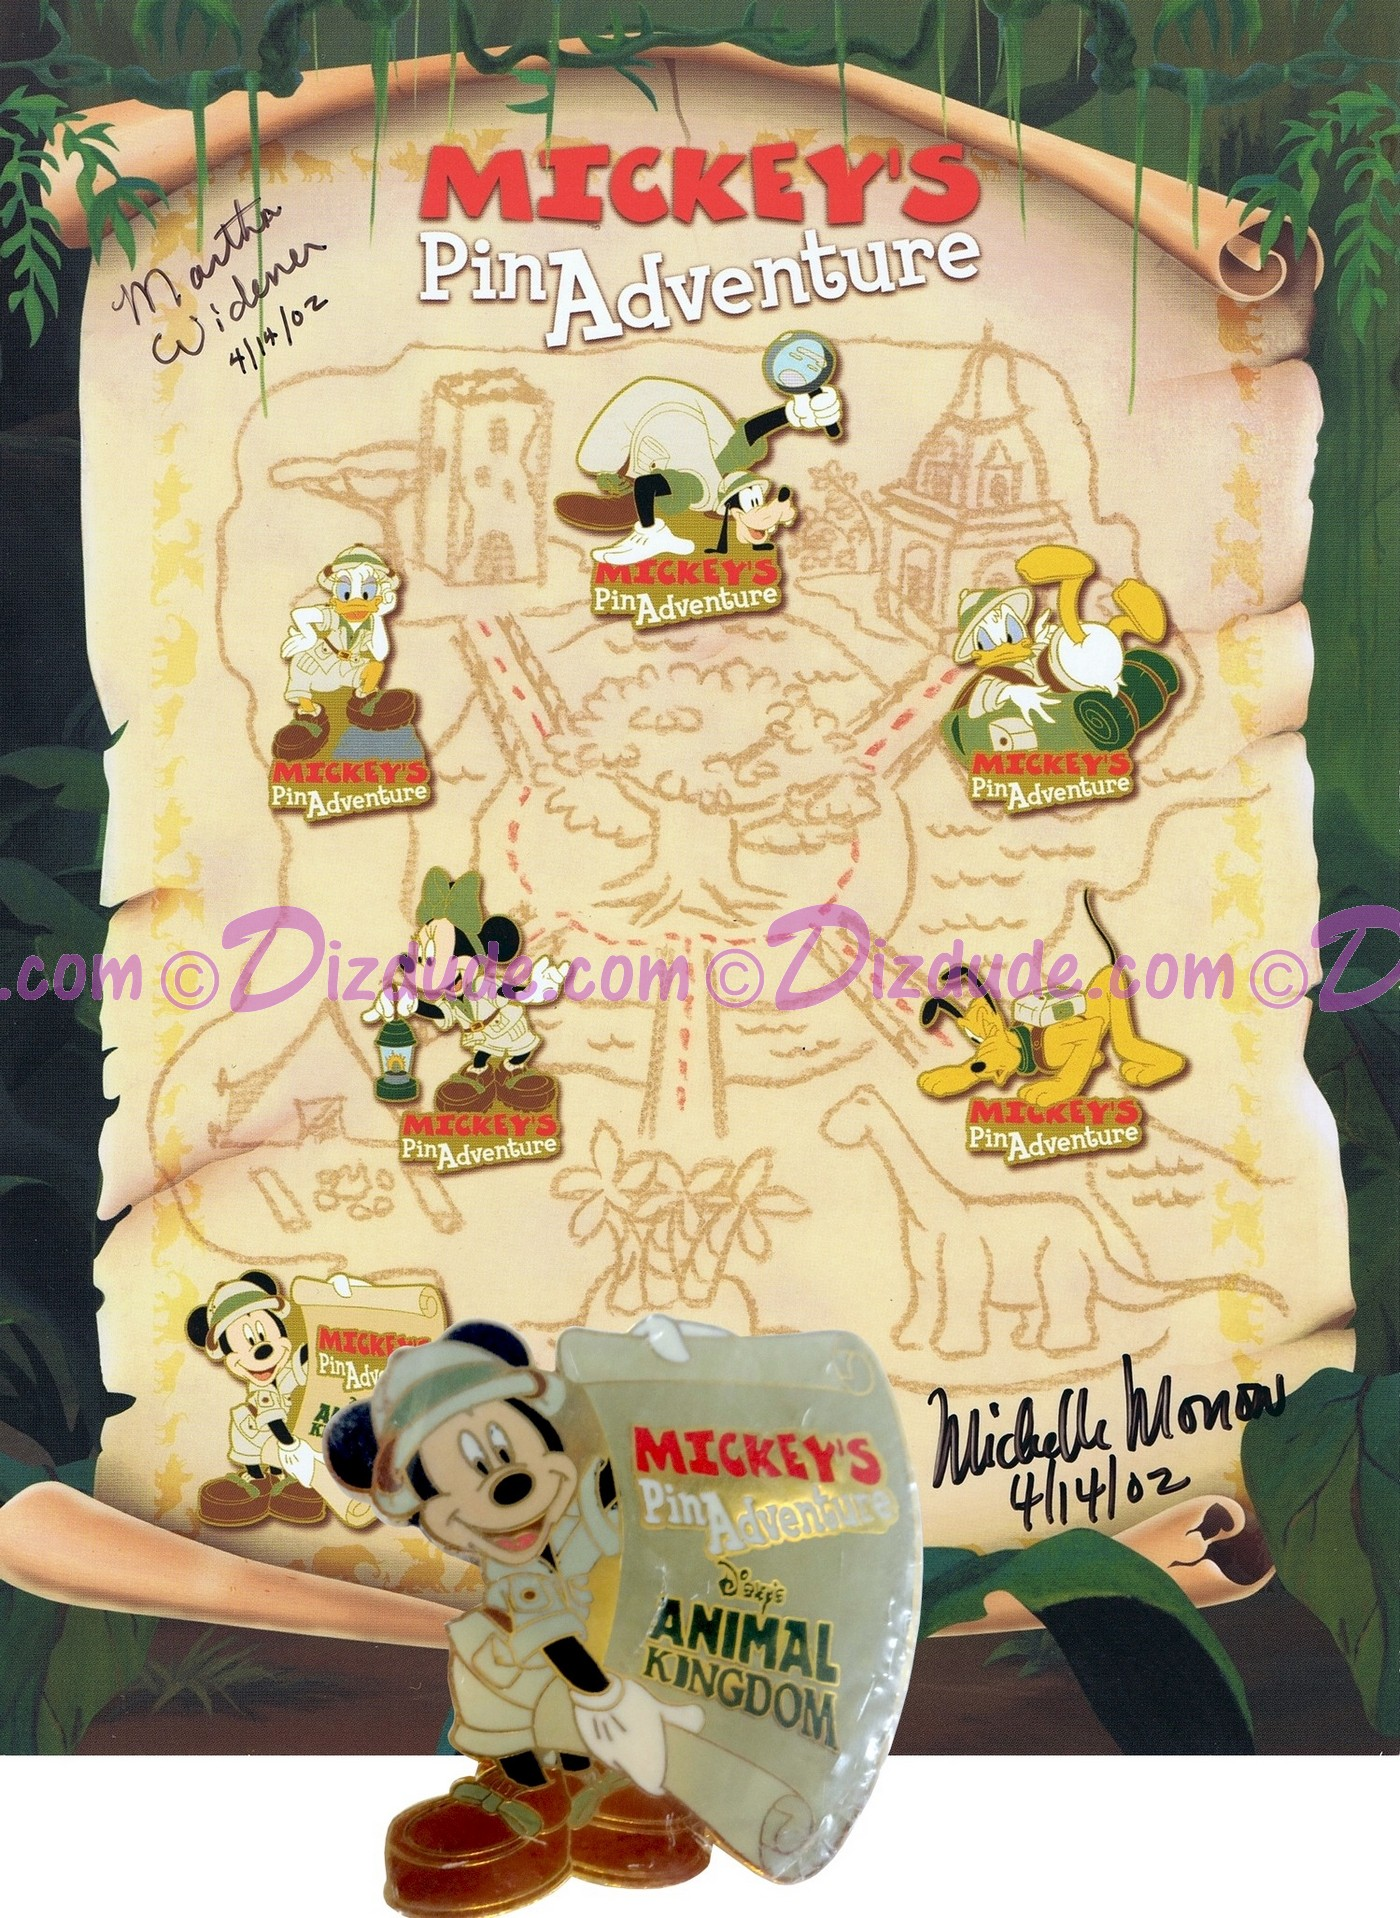 Autographed Walt Disney World Animal Kingdom - Mickey's Pin Adventure 2002 Pin-board with Mickey Mouse Completer Pin © Dizdude.com